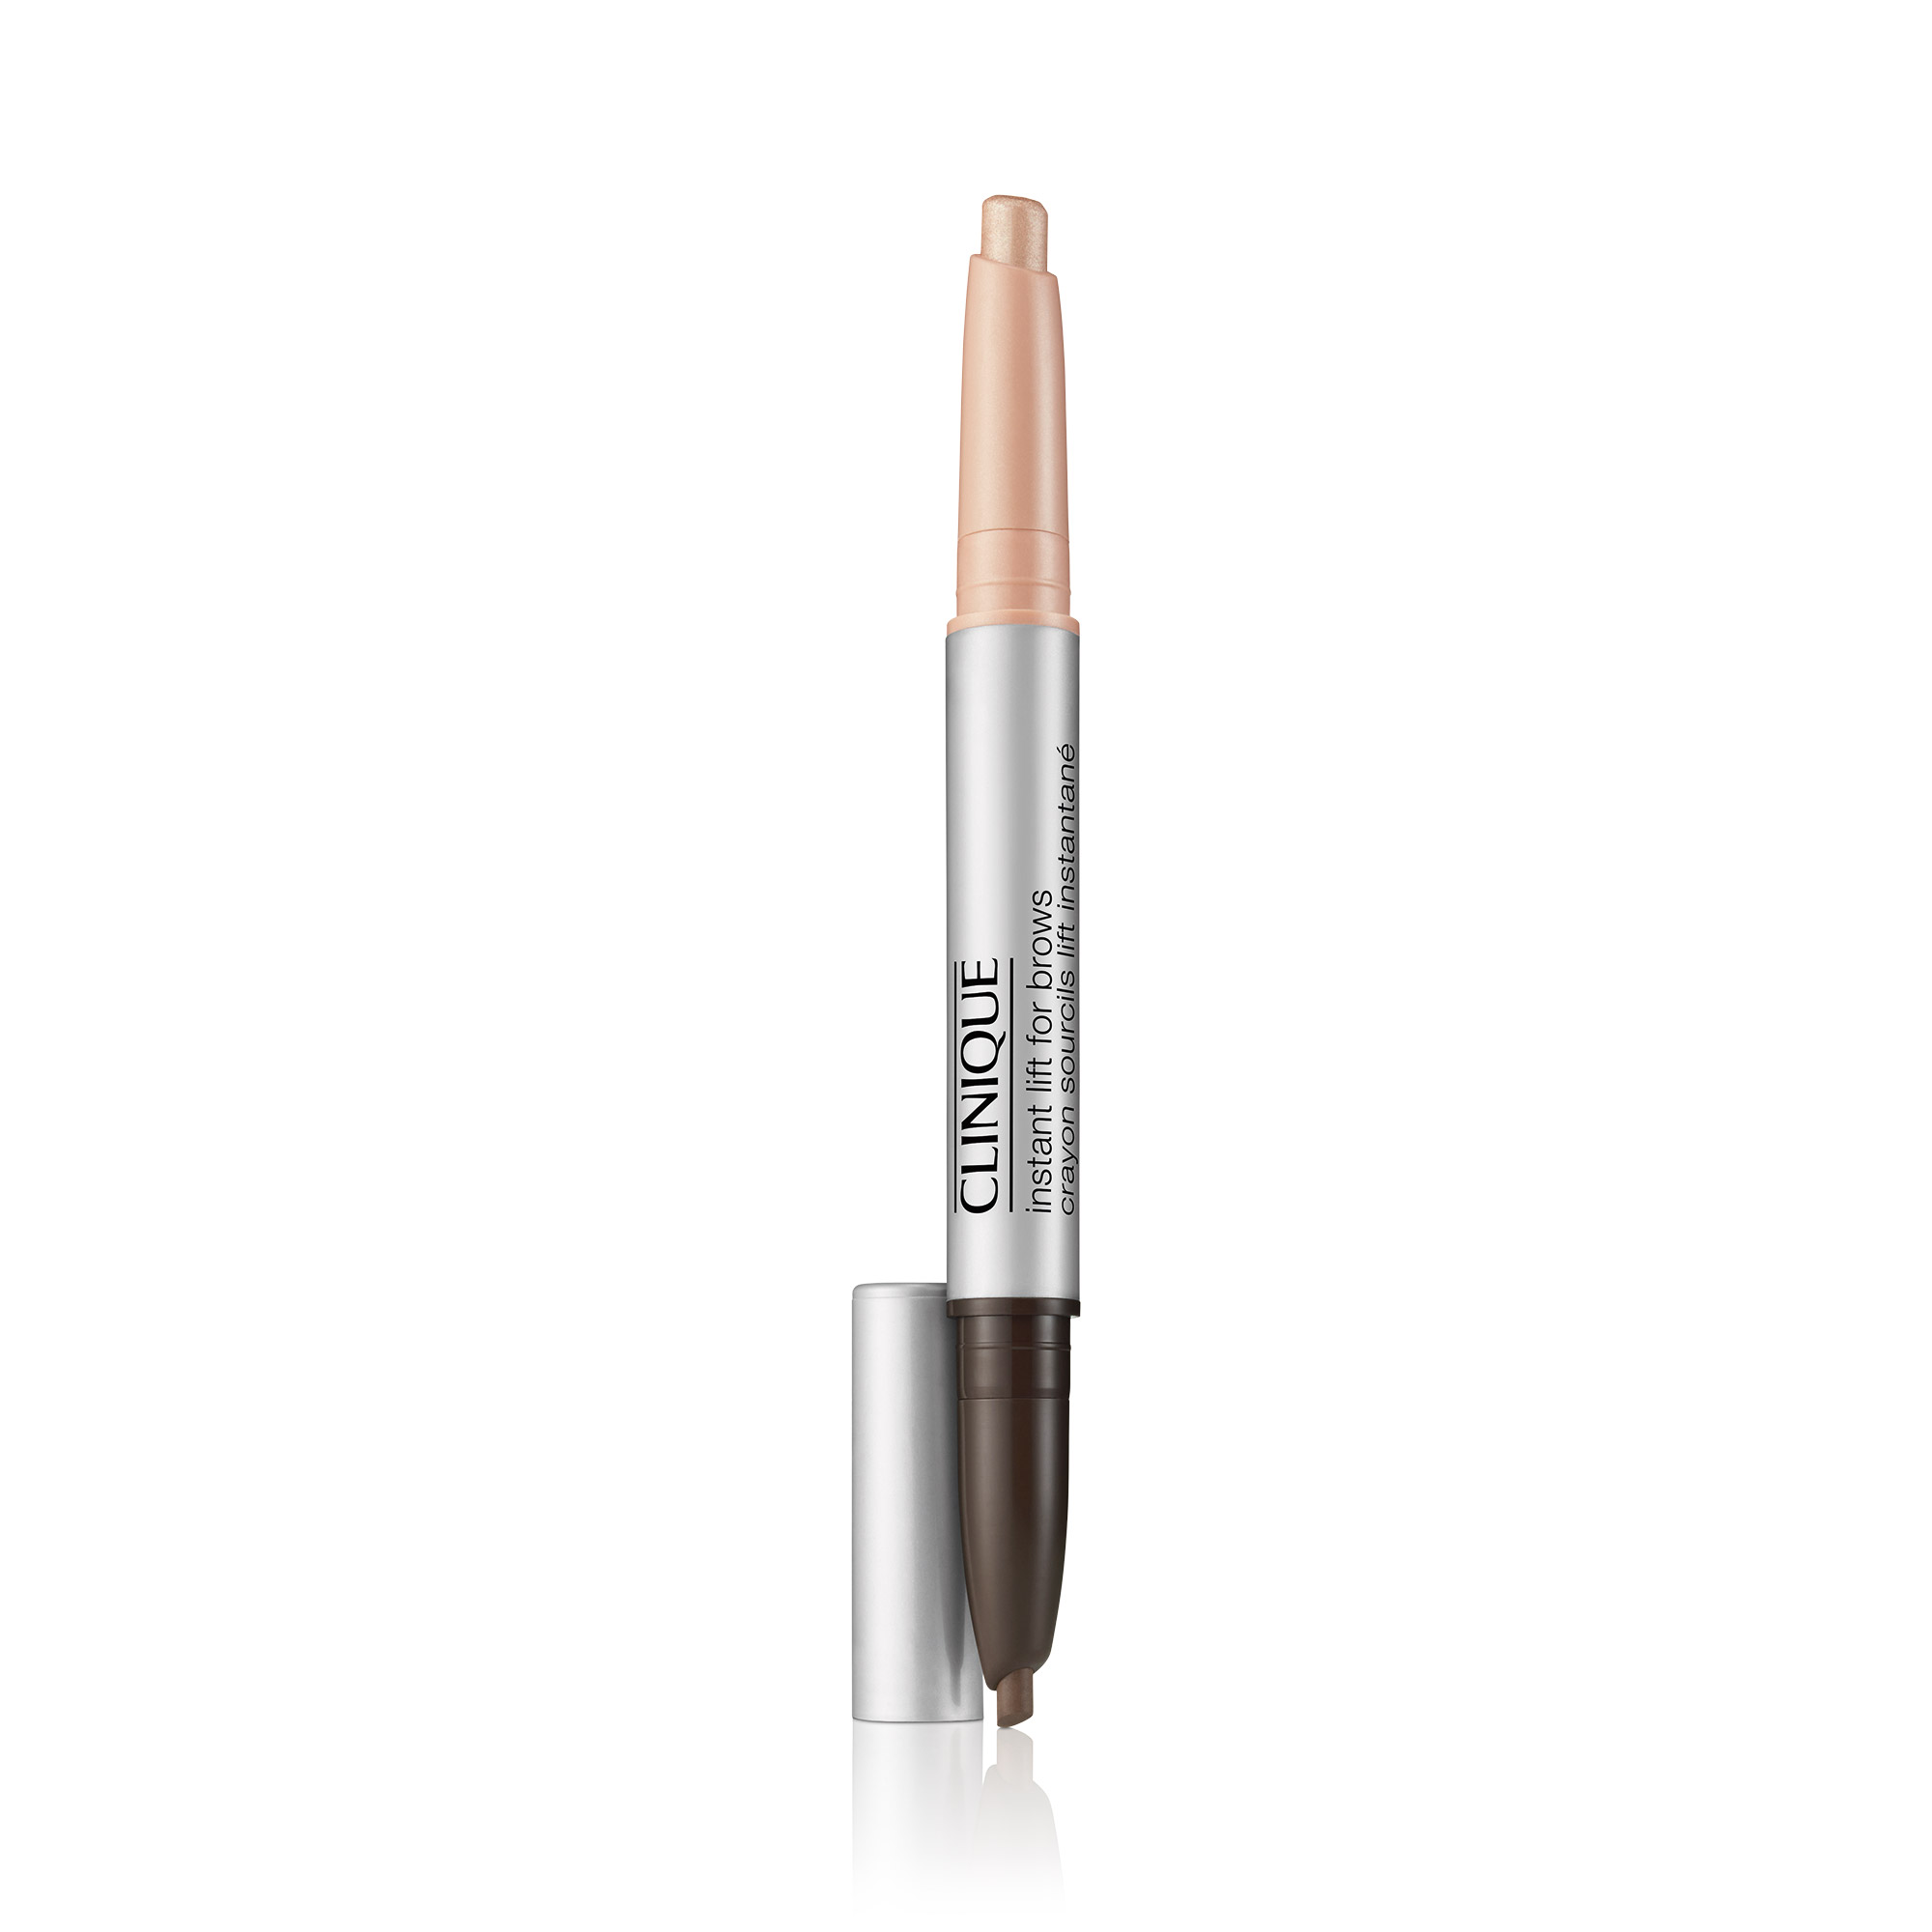 Instant Lift for Brows 02 Soft Brown